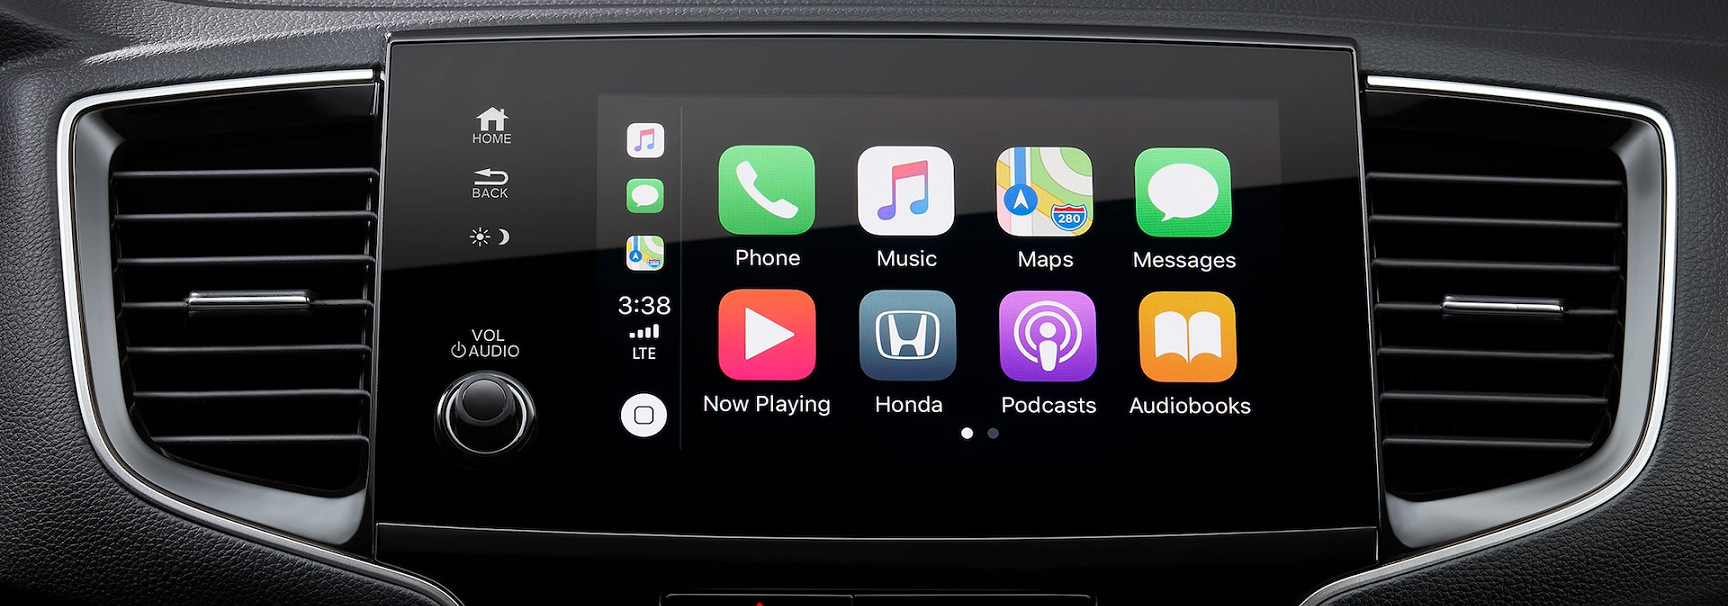 Apple CarPlay® in the 2020 Pilot